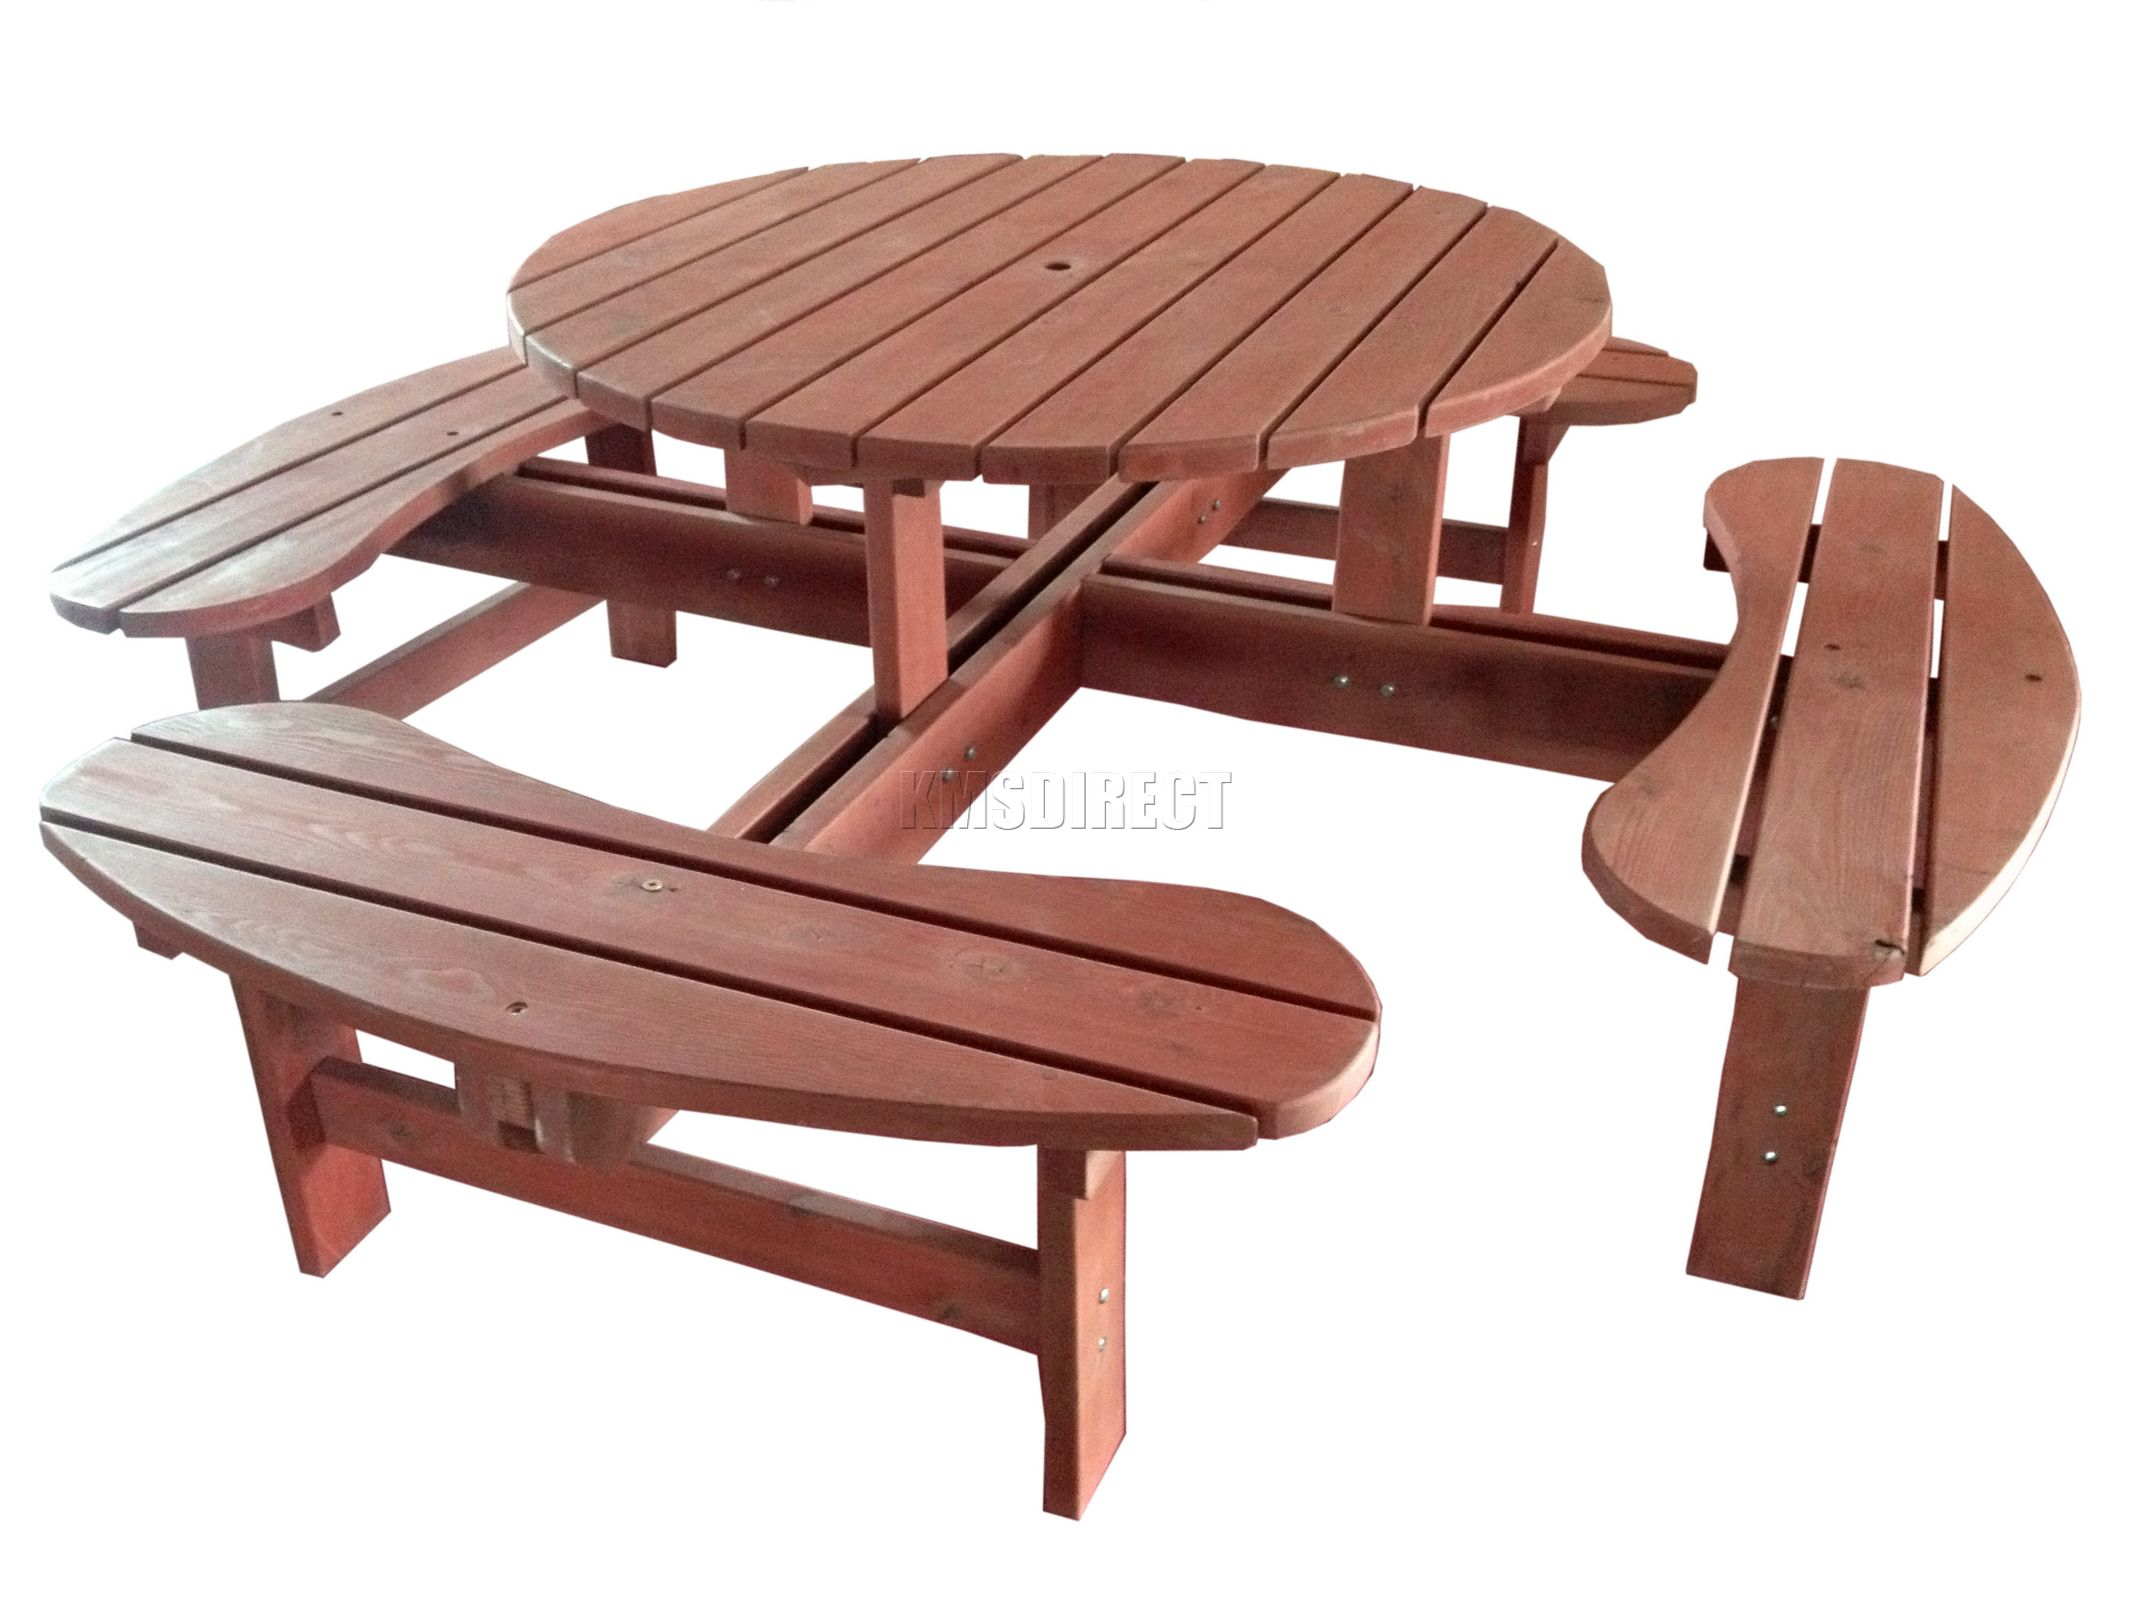 New 8 Seater Wooden Pub Bench Round Picnic Table Furniture Brown Garden Patio Ebay